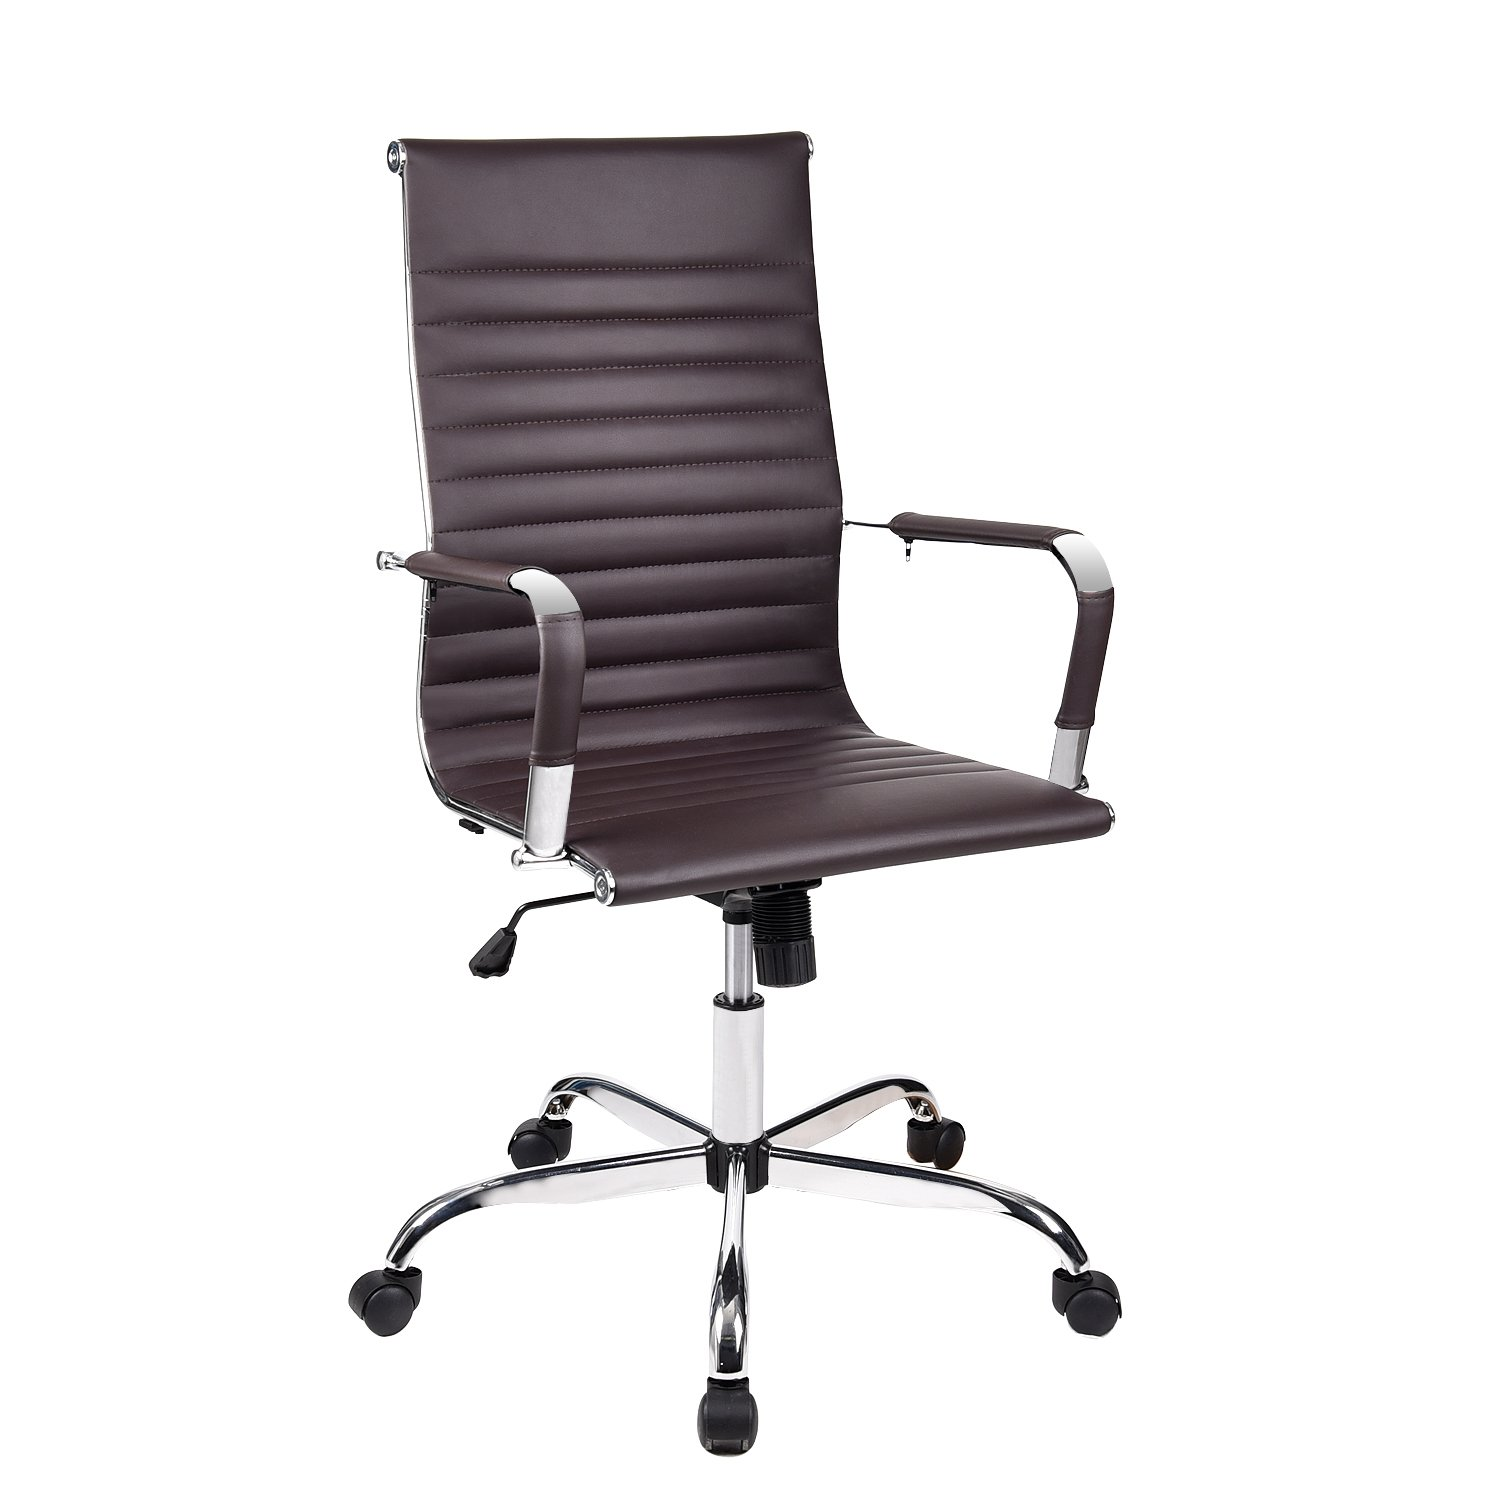 Elecwish Adjustable Office Executive Swivel Chair, High Back Padded, Tall Ribbed, PU Leather, wheels Arm Rest Computer, Chrome Base, Home Furniture, Conference Room Reception (Brown)